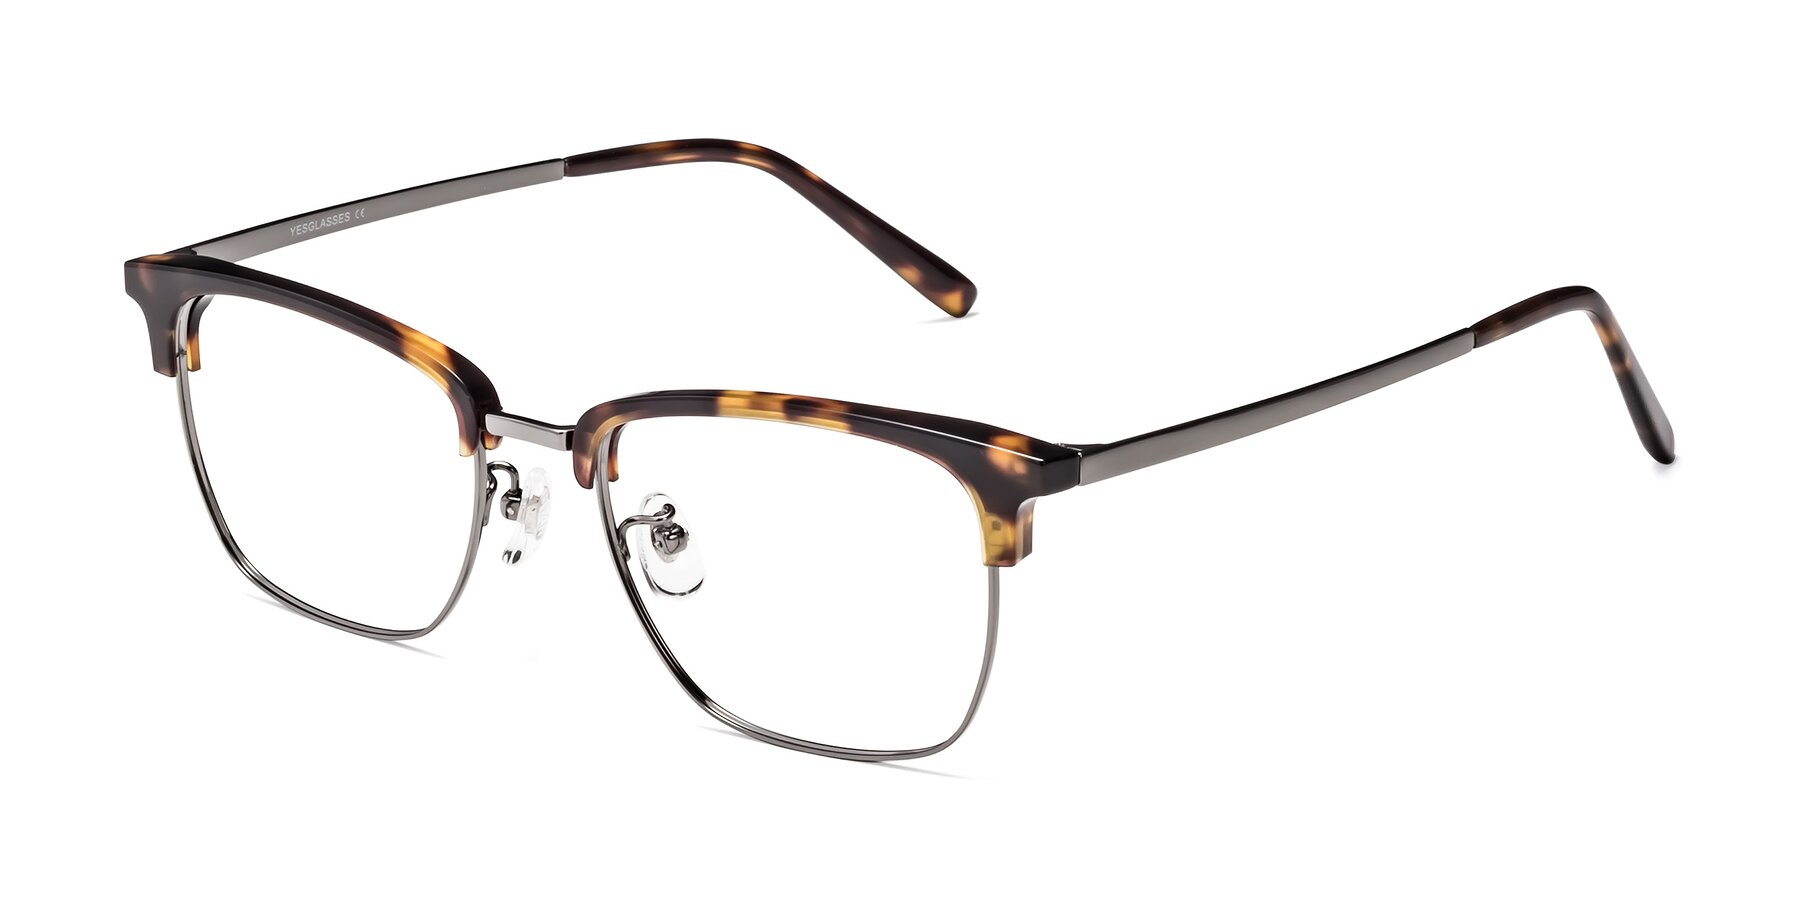 Angle of Milpa in Tortoise with Clear Blue Light Blocking Lenses